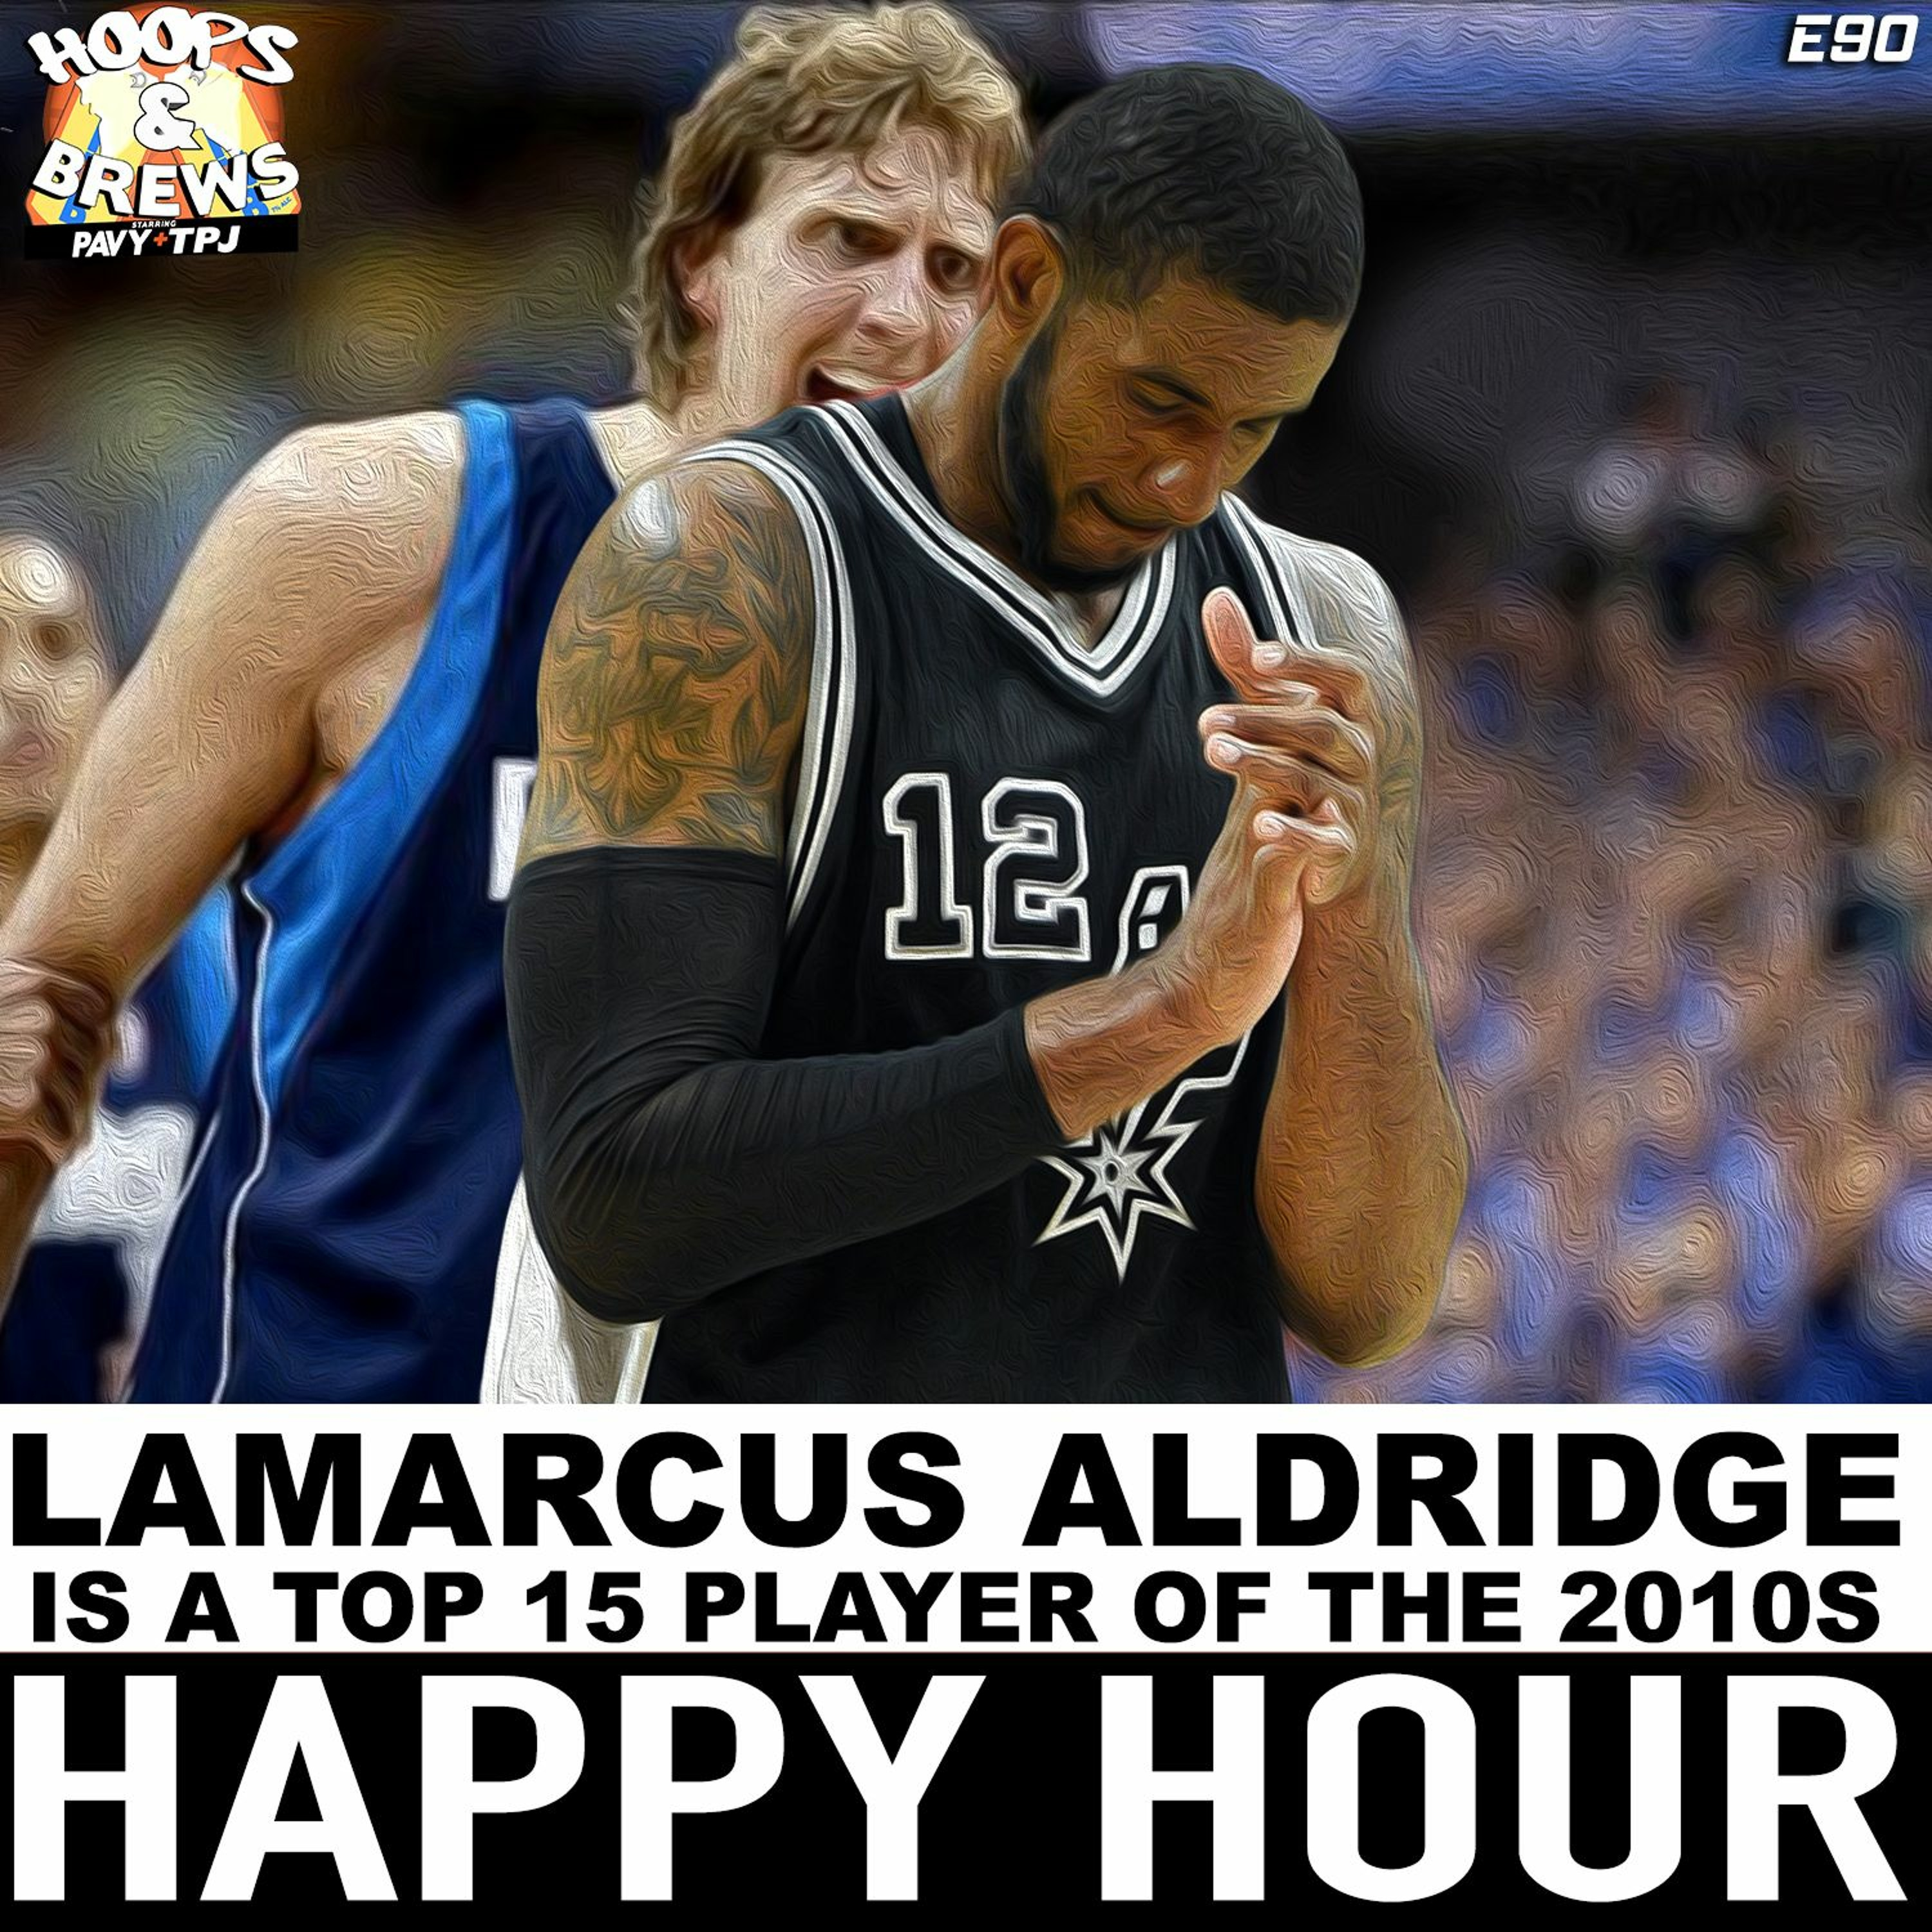 Happy Hour Ep. 90: Lamarcus Aldridge is a Top 15 Player of 2010's + ALL DECADE TEAM 2010s